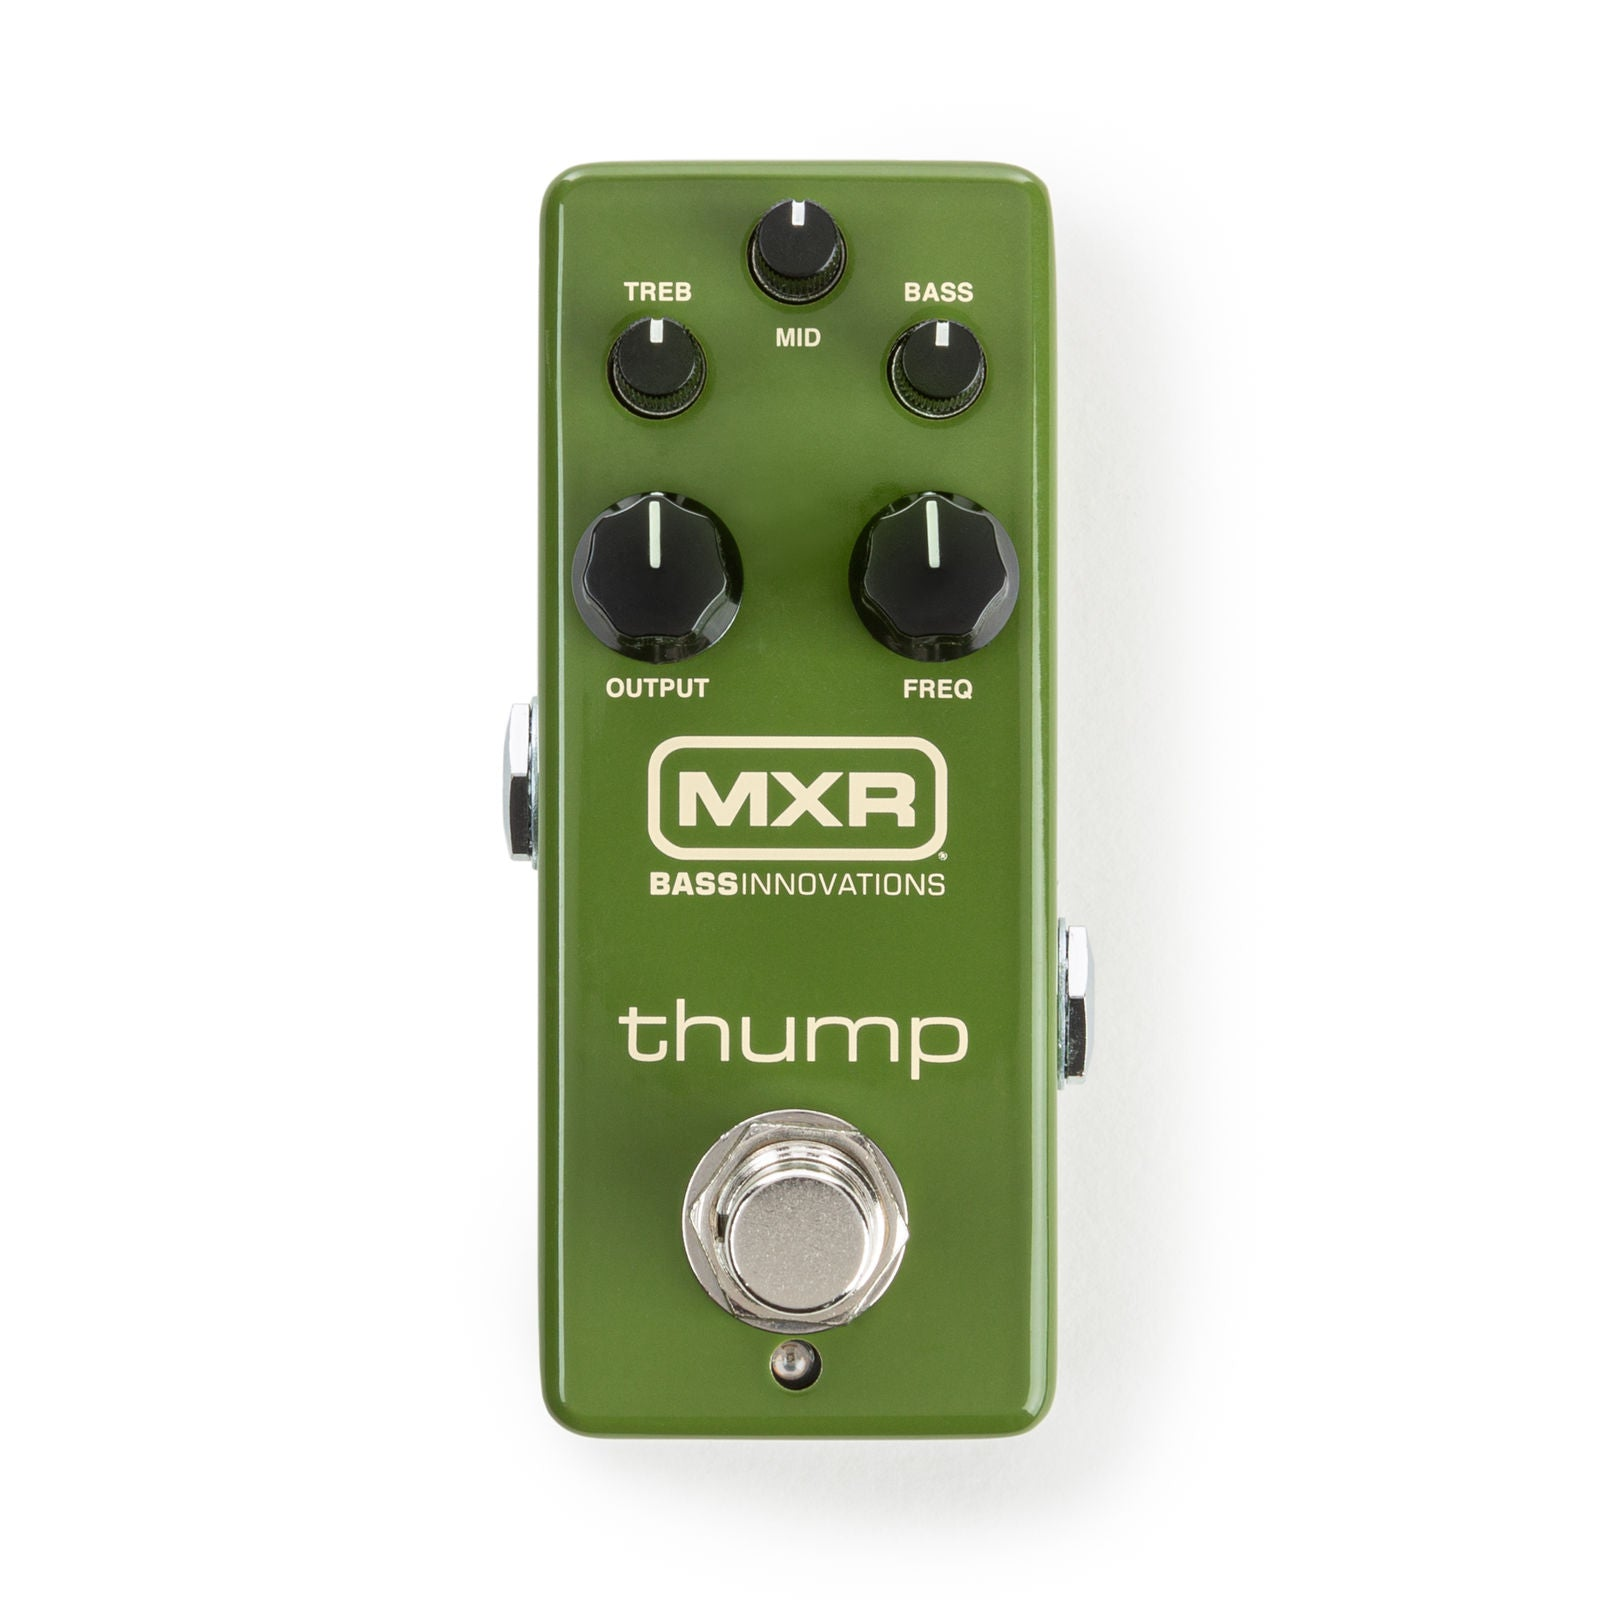 MXR Thump Bass Preamp - M281